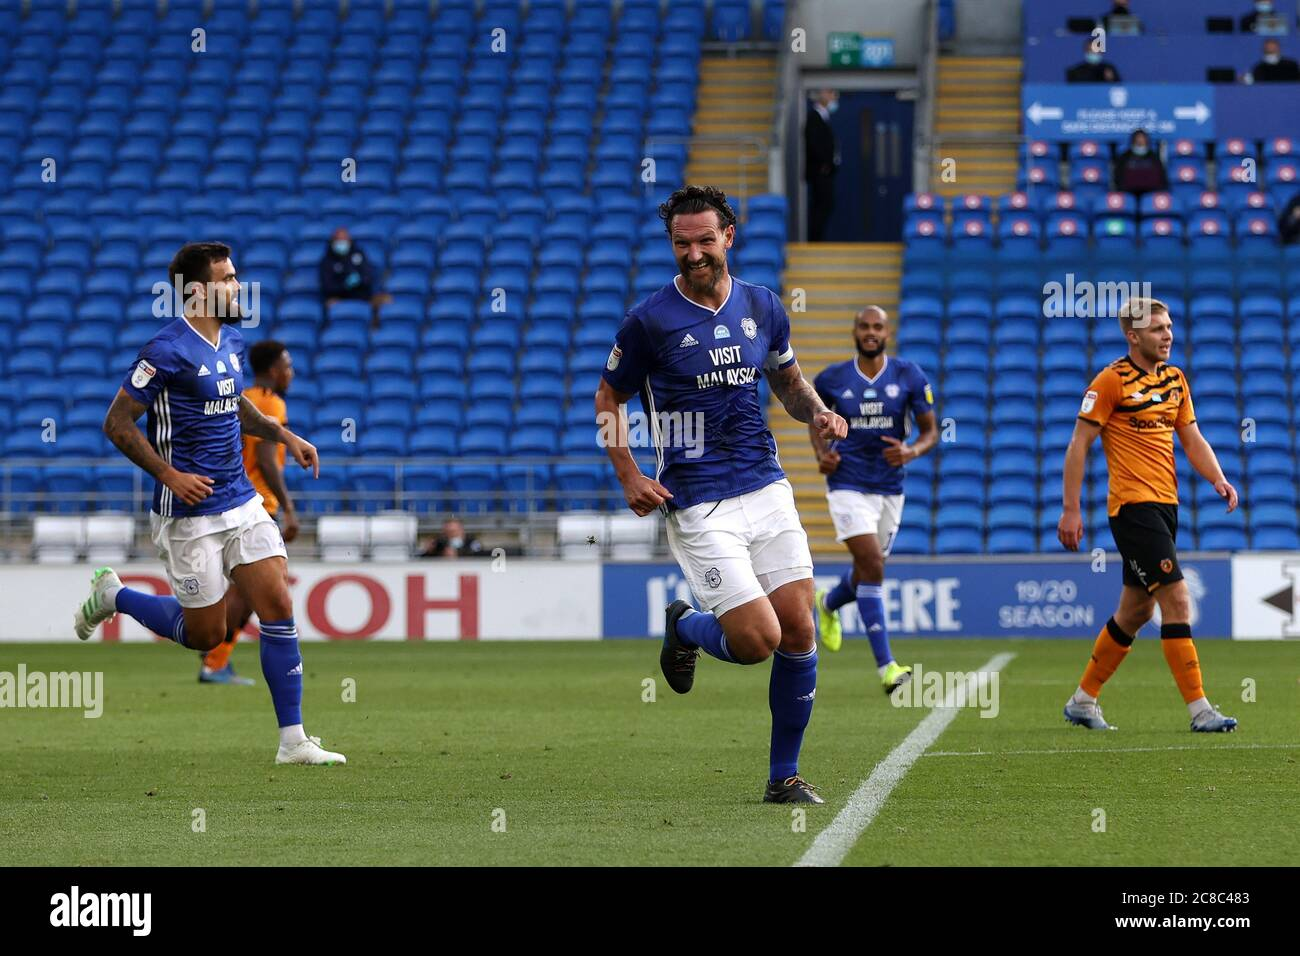 Hull city vs cardiff betting preview goal margin of victory betting lines